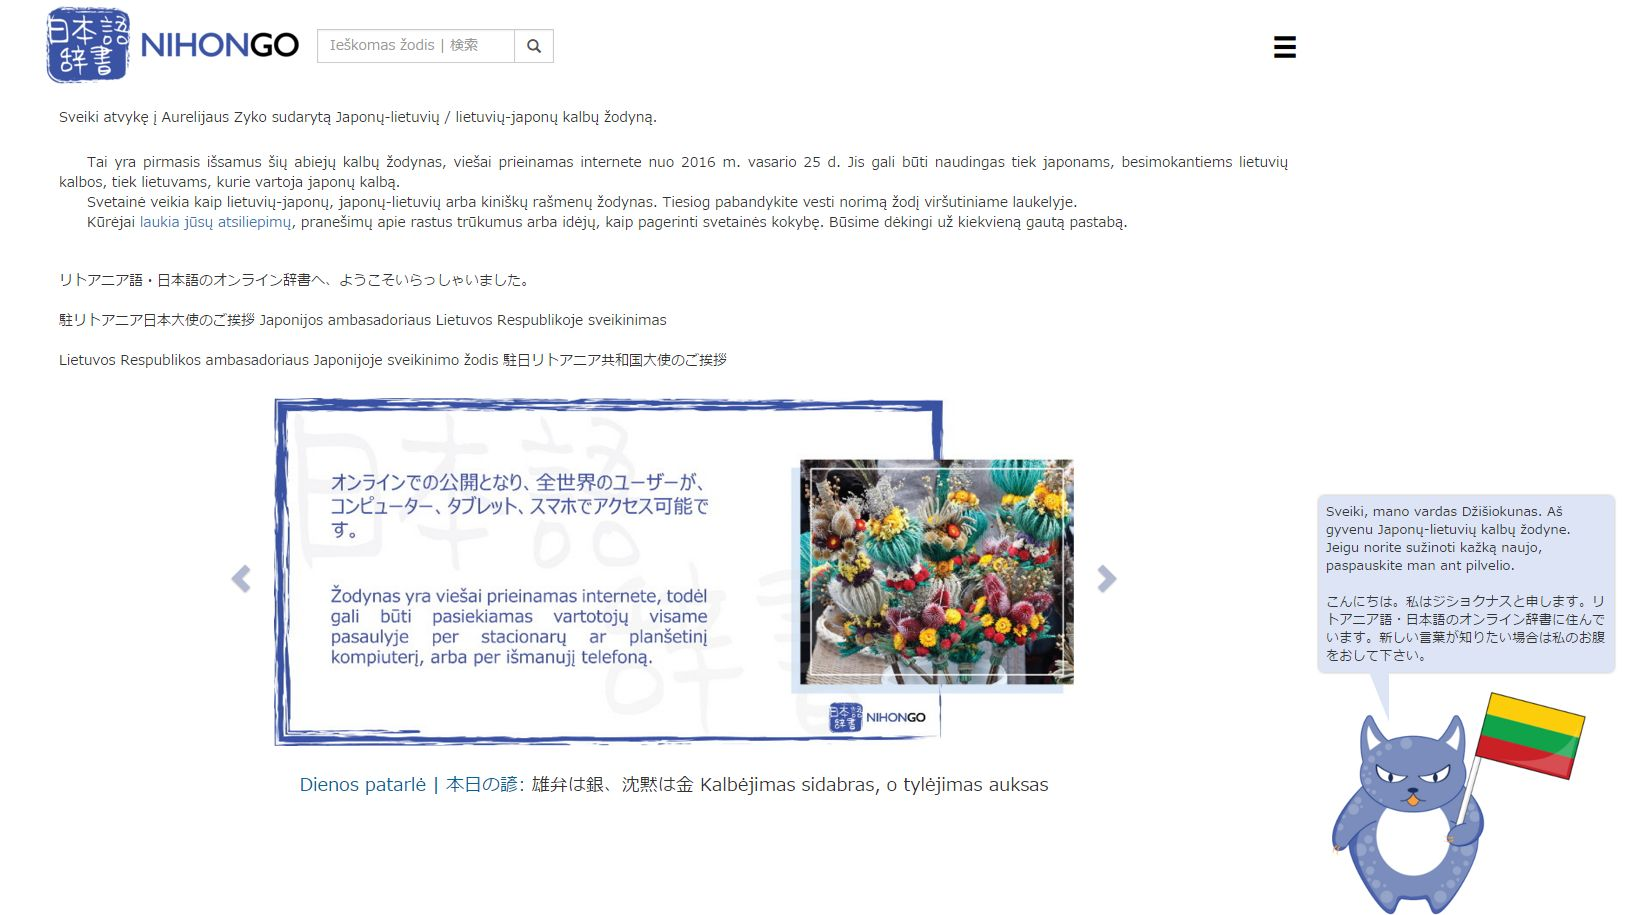 First Japanese-Lithuanian online dictionary launched